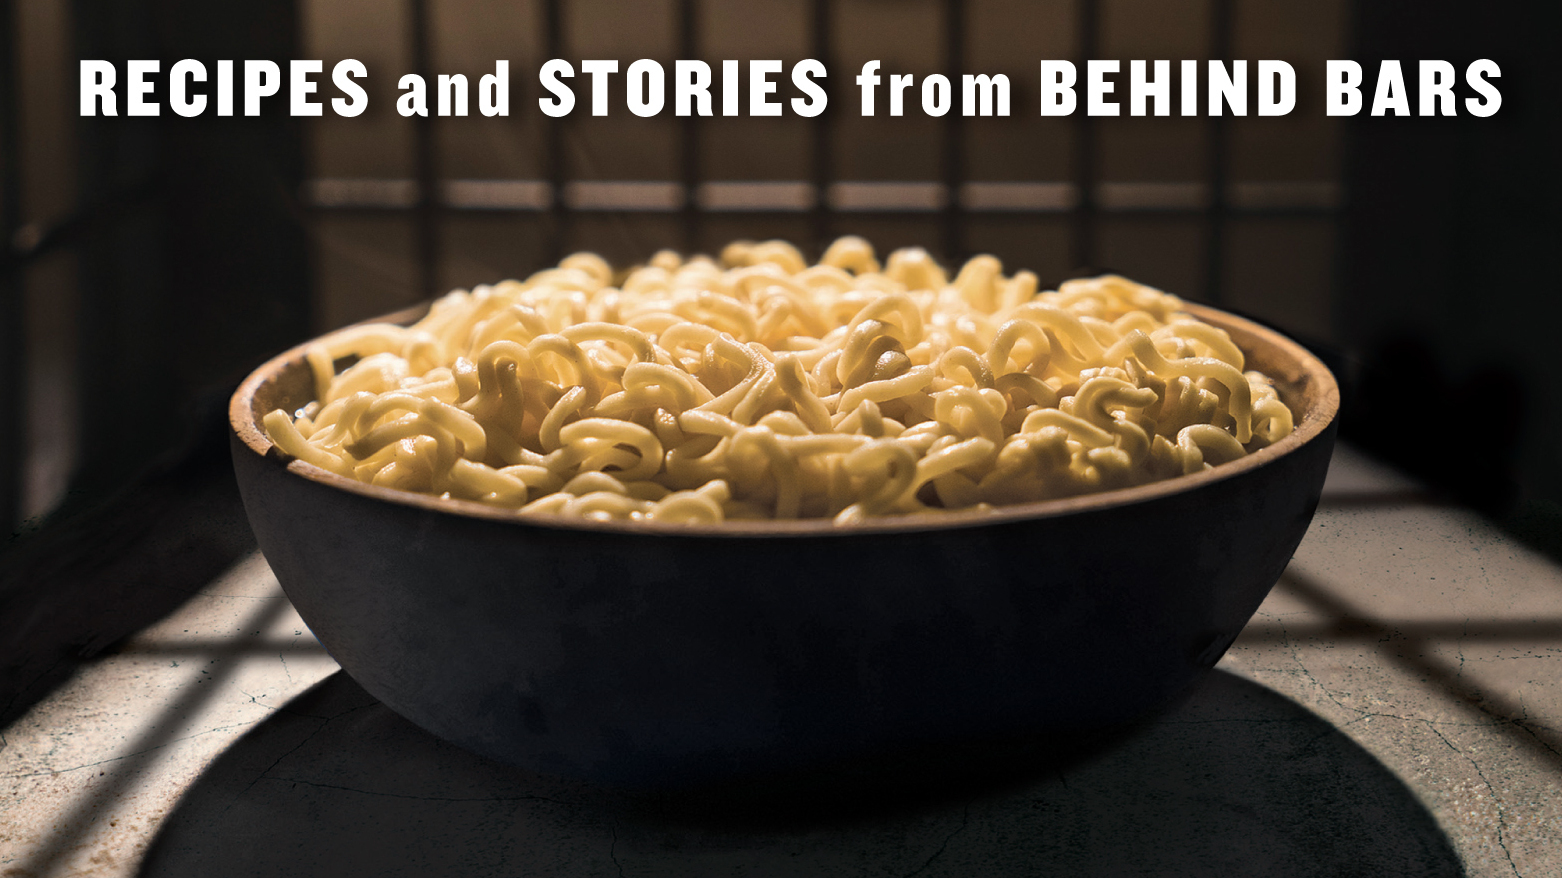 prison ramen recipes and stories from behind bars